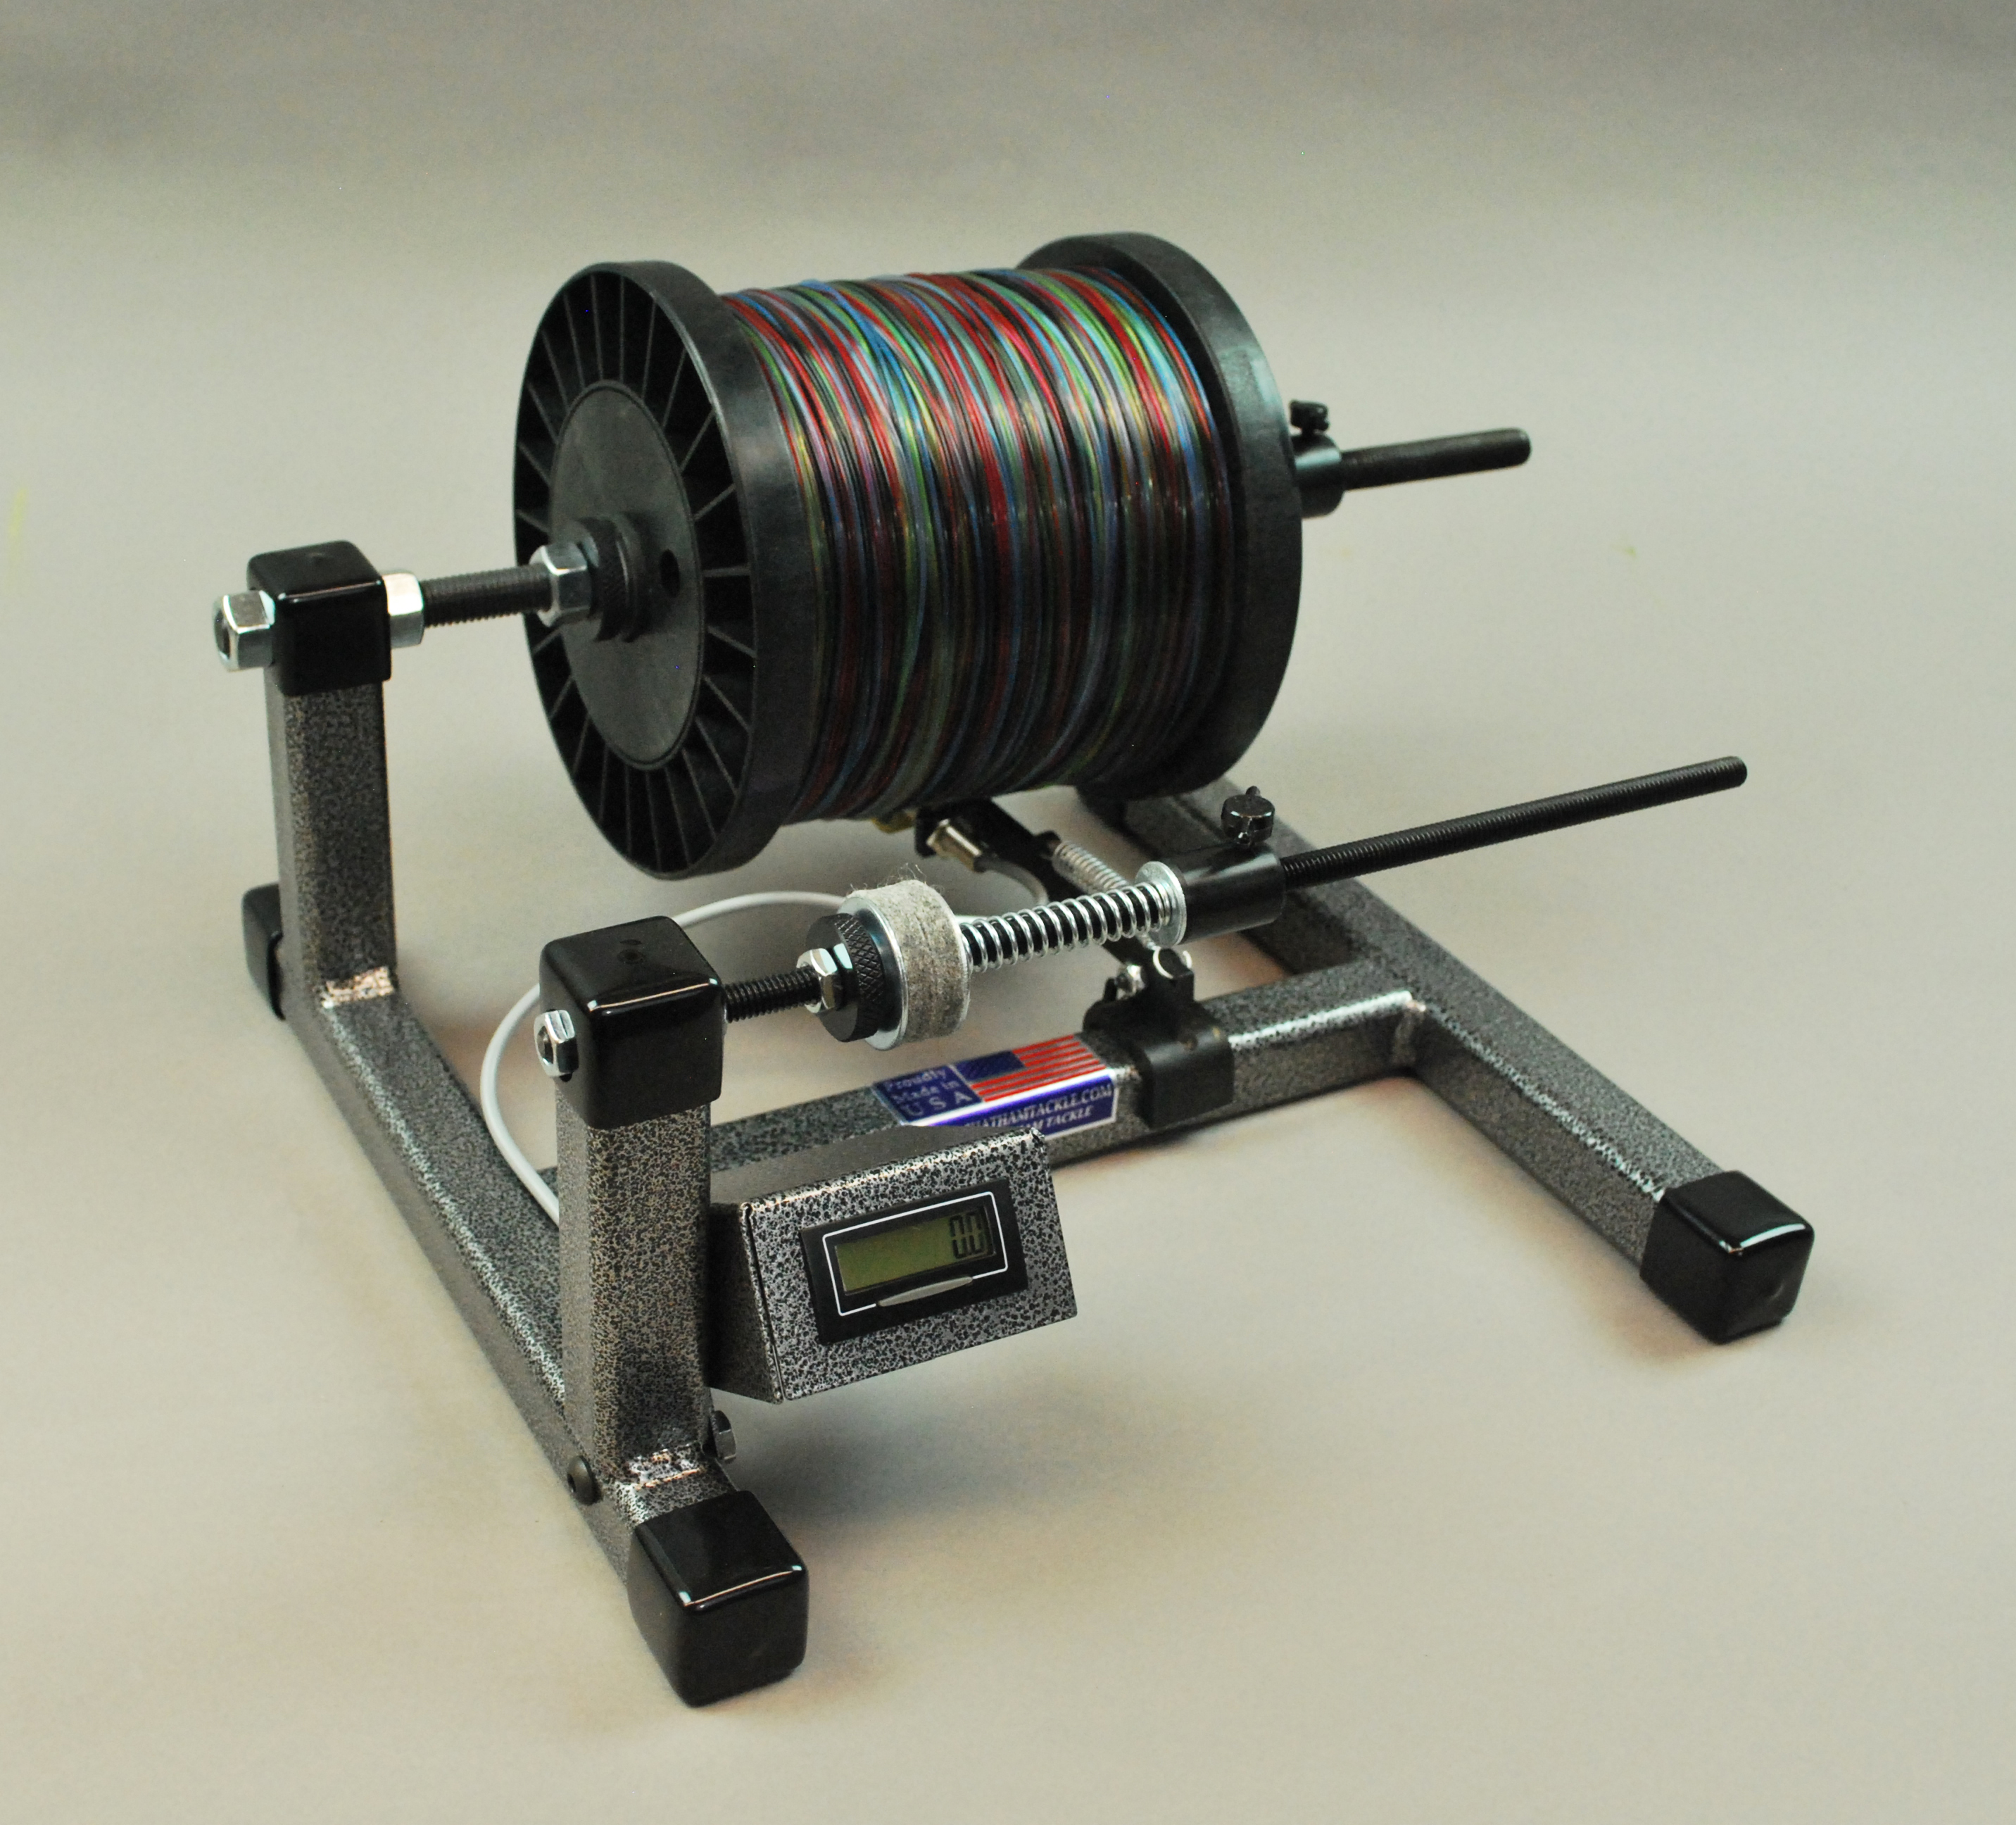 Super Spooler-Heavy Duty Line Spool Holder with Line ...